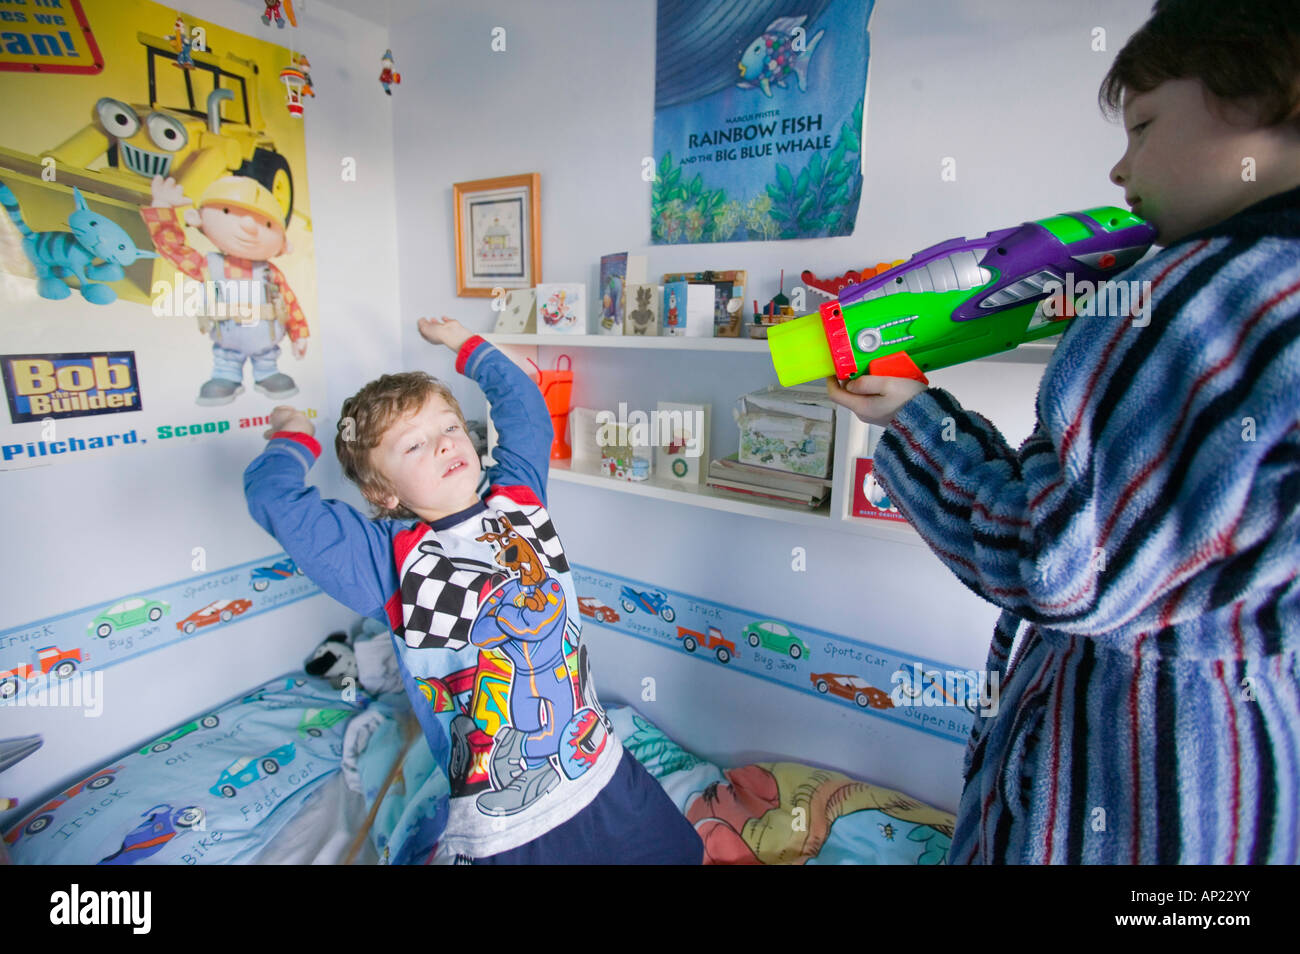 play fighting bedroom stock photos & play fighting bedroom stock